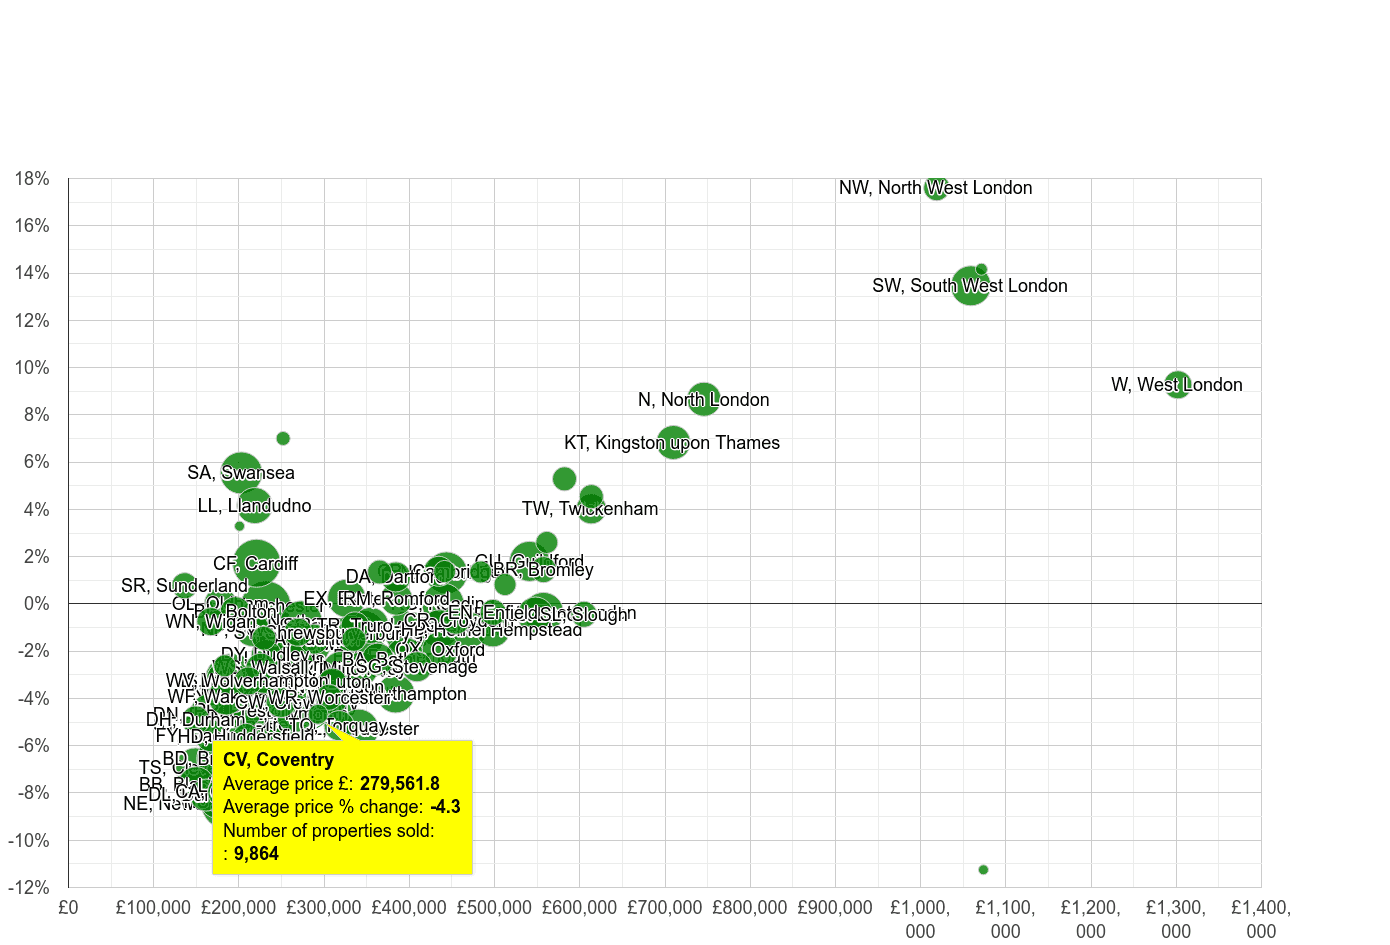 Coventry house prices compared to other areas